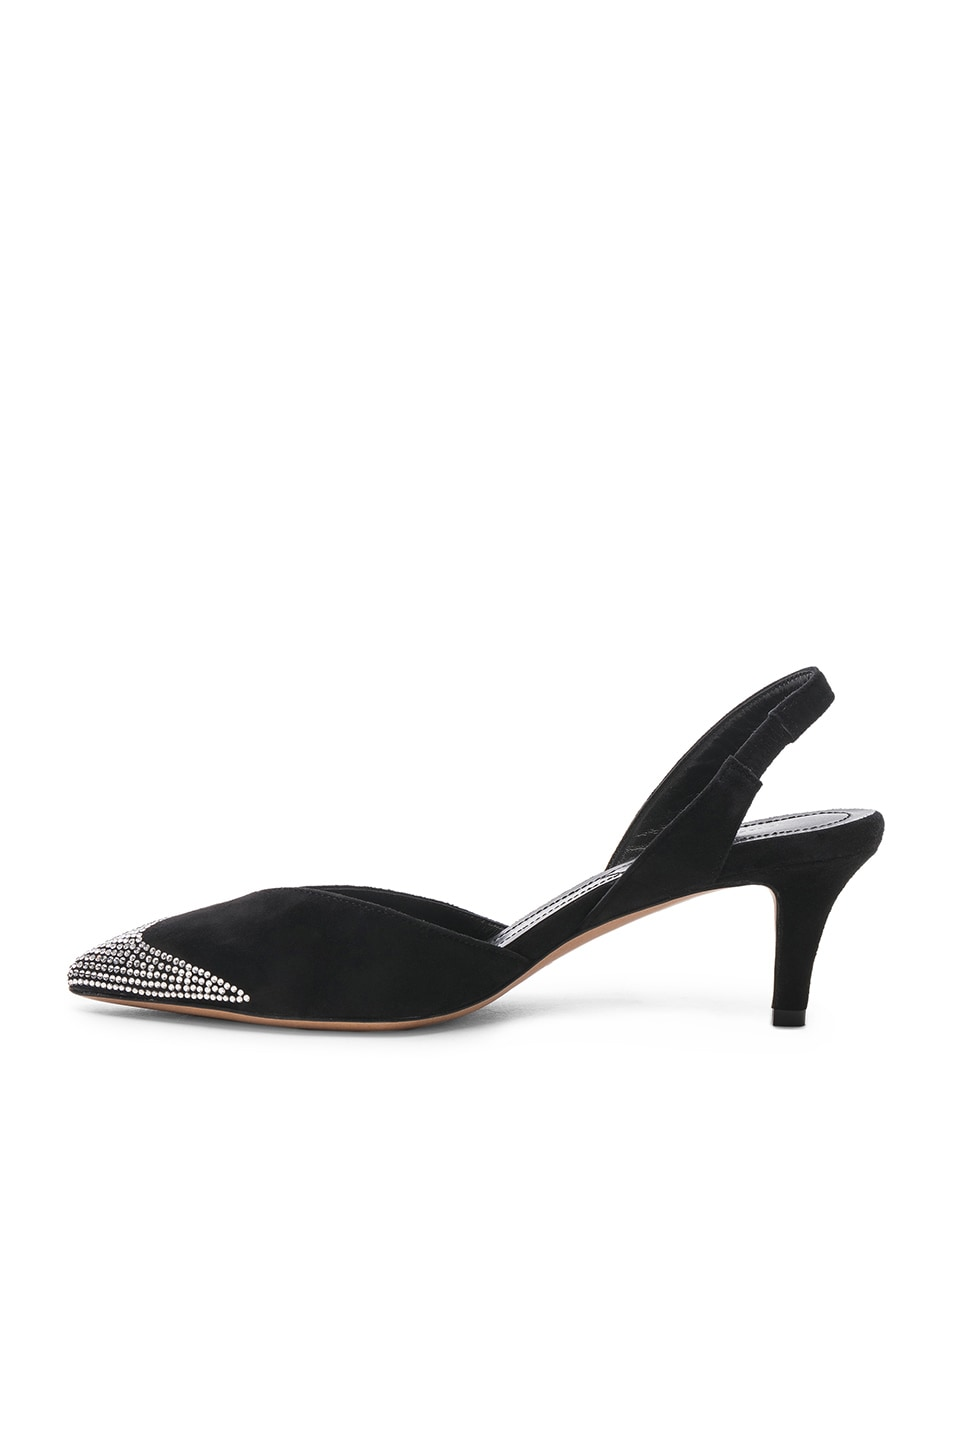 Image 5 of Isabel Marant Parkling Heel in Black